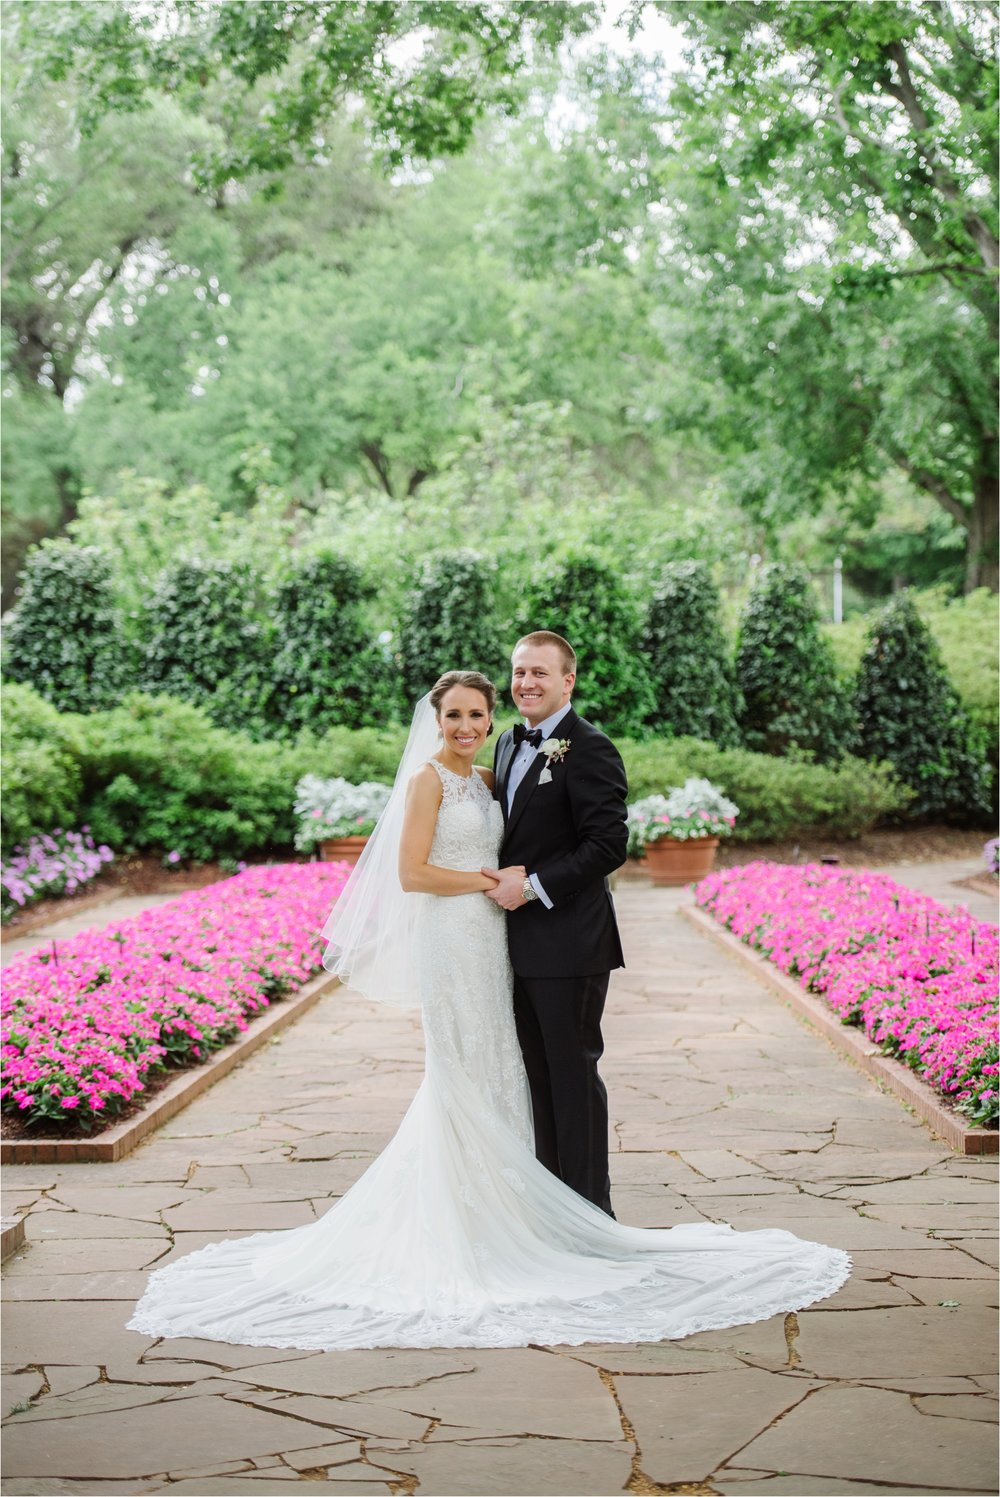 dallasweddingphotographer_texasweddingphotographer_texasweddingphotographers_dallasweddingphotographer_mattandjulieweddings_0725.jpg